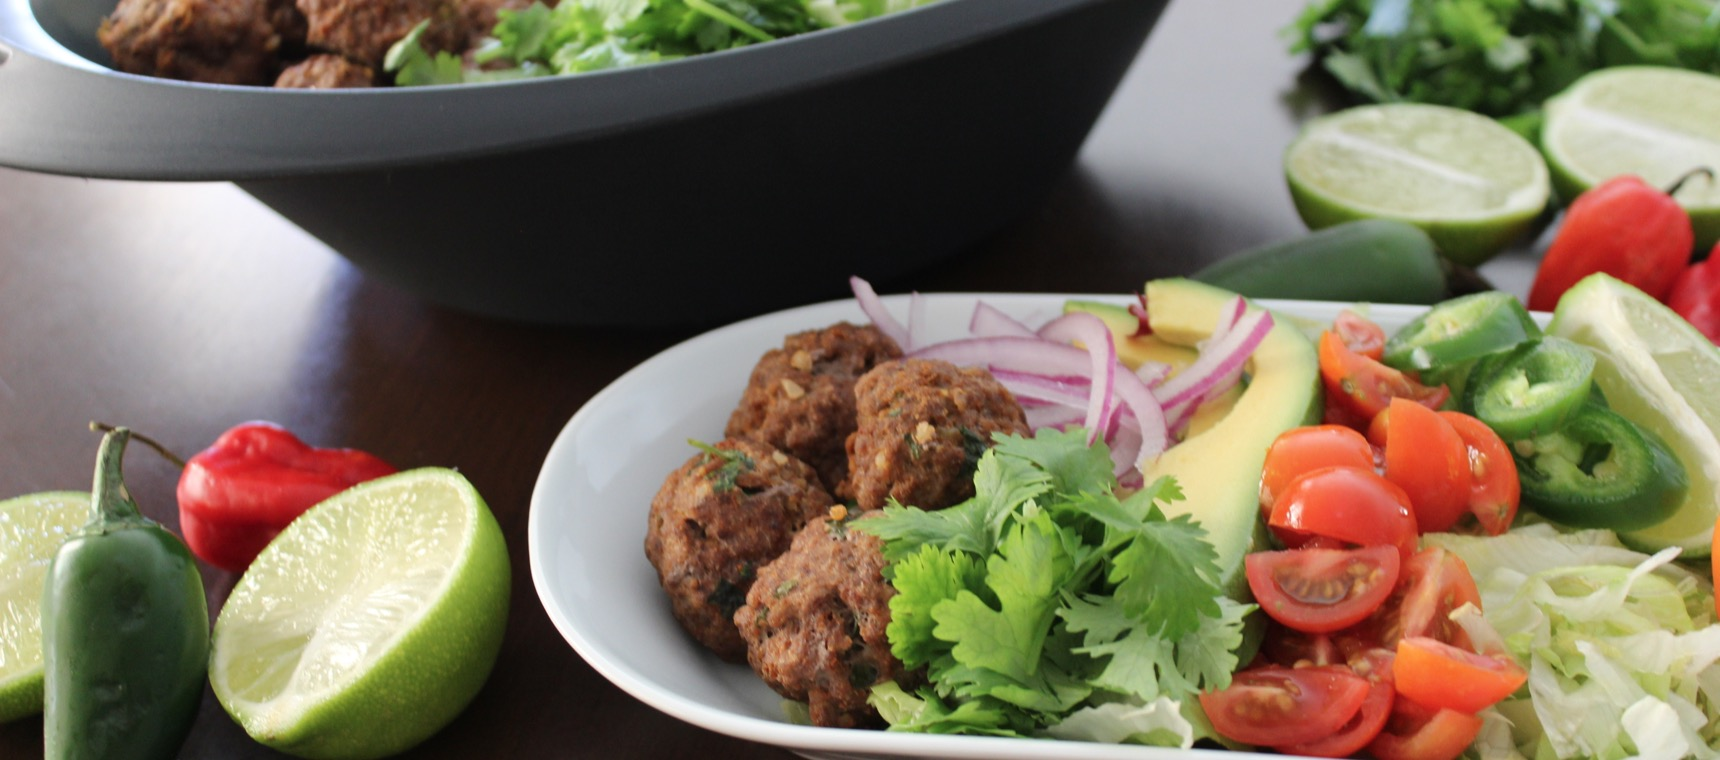 Mexican Meatball Salad